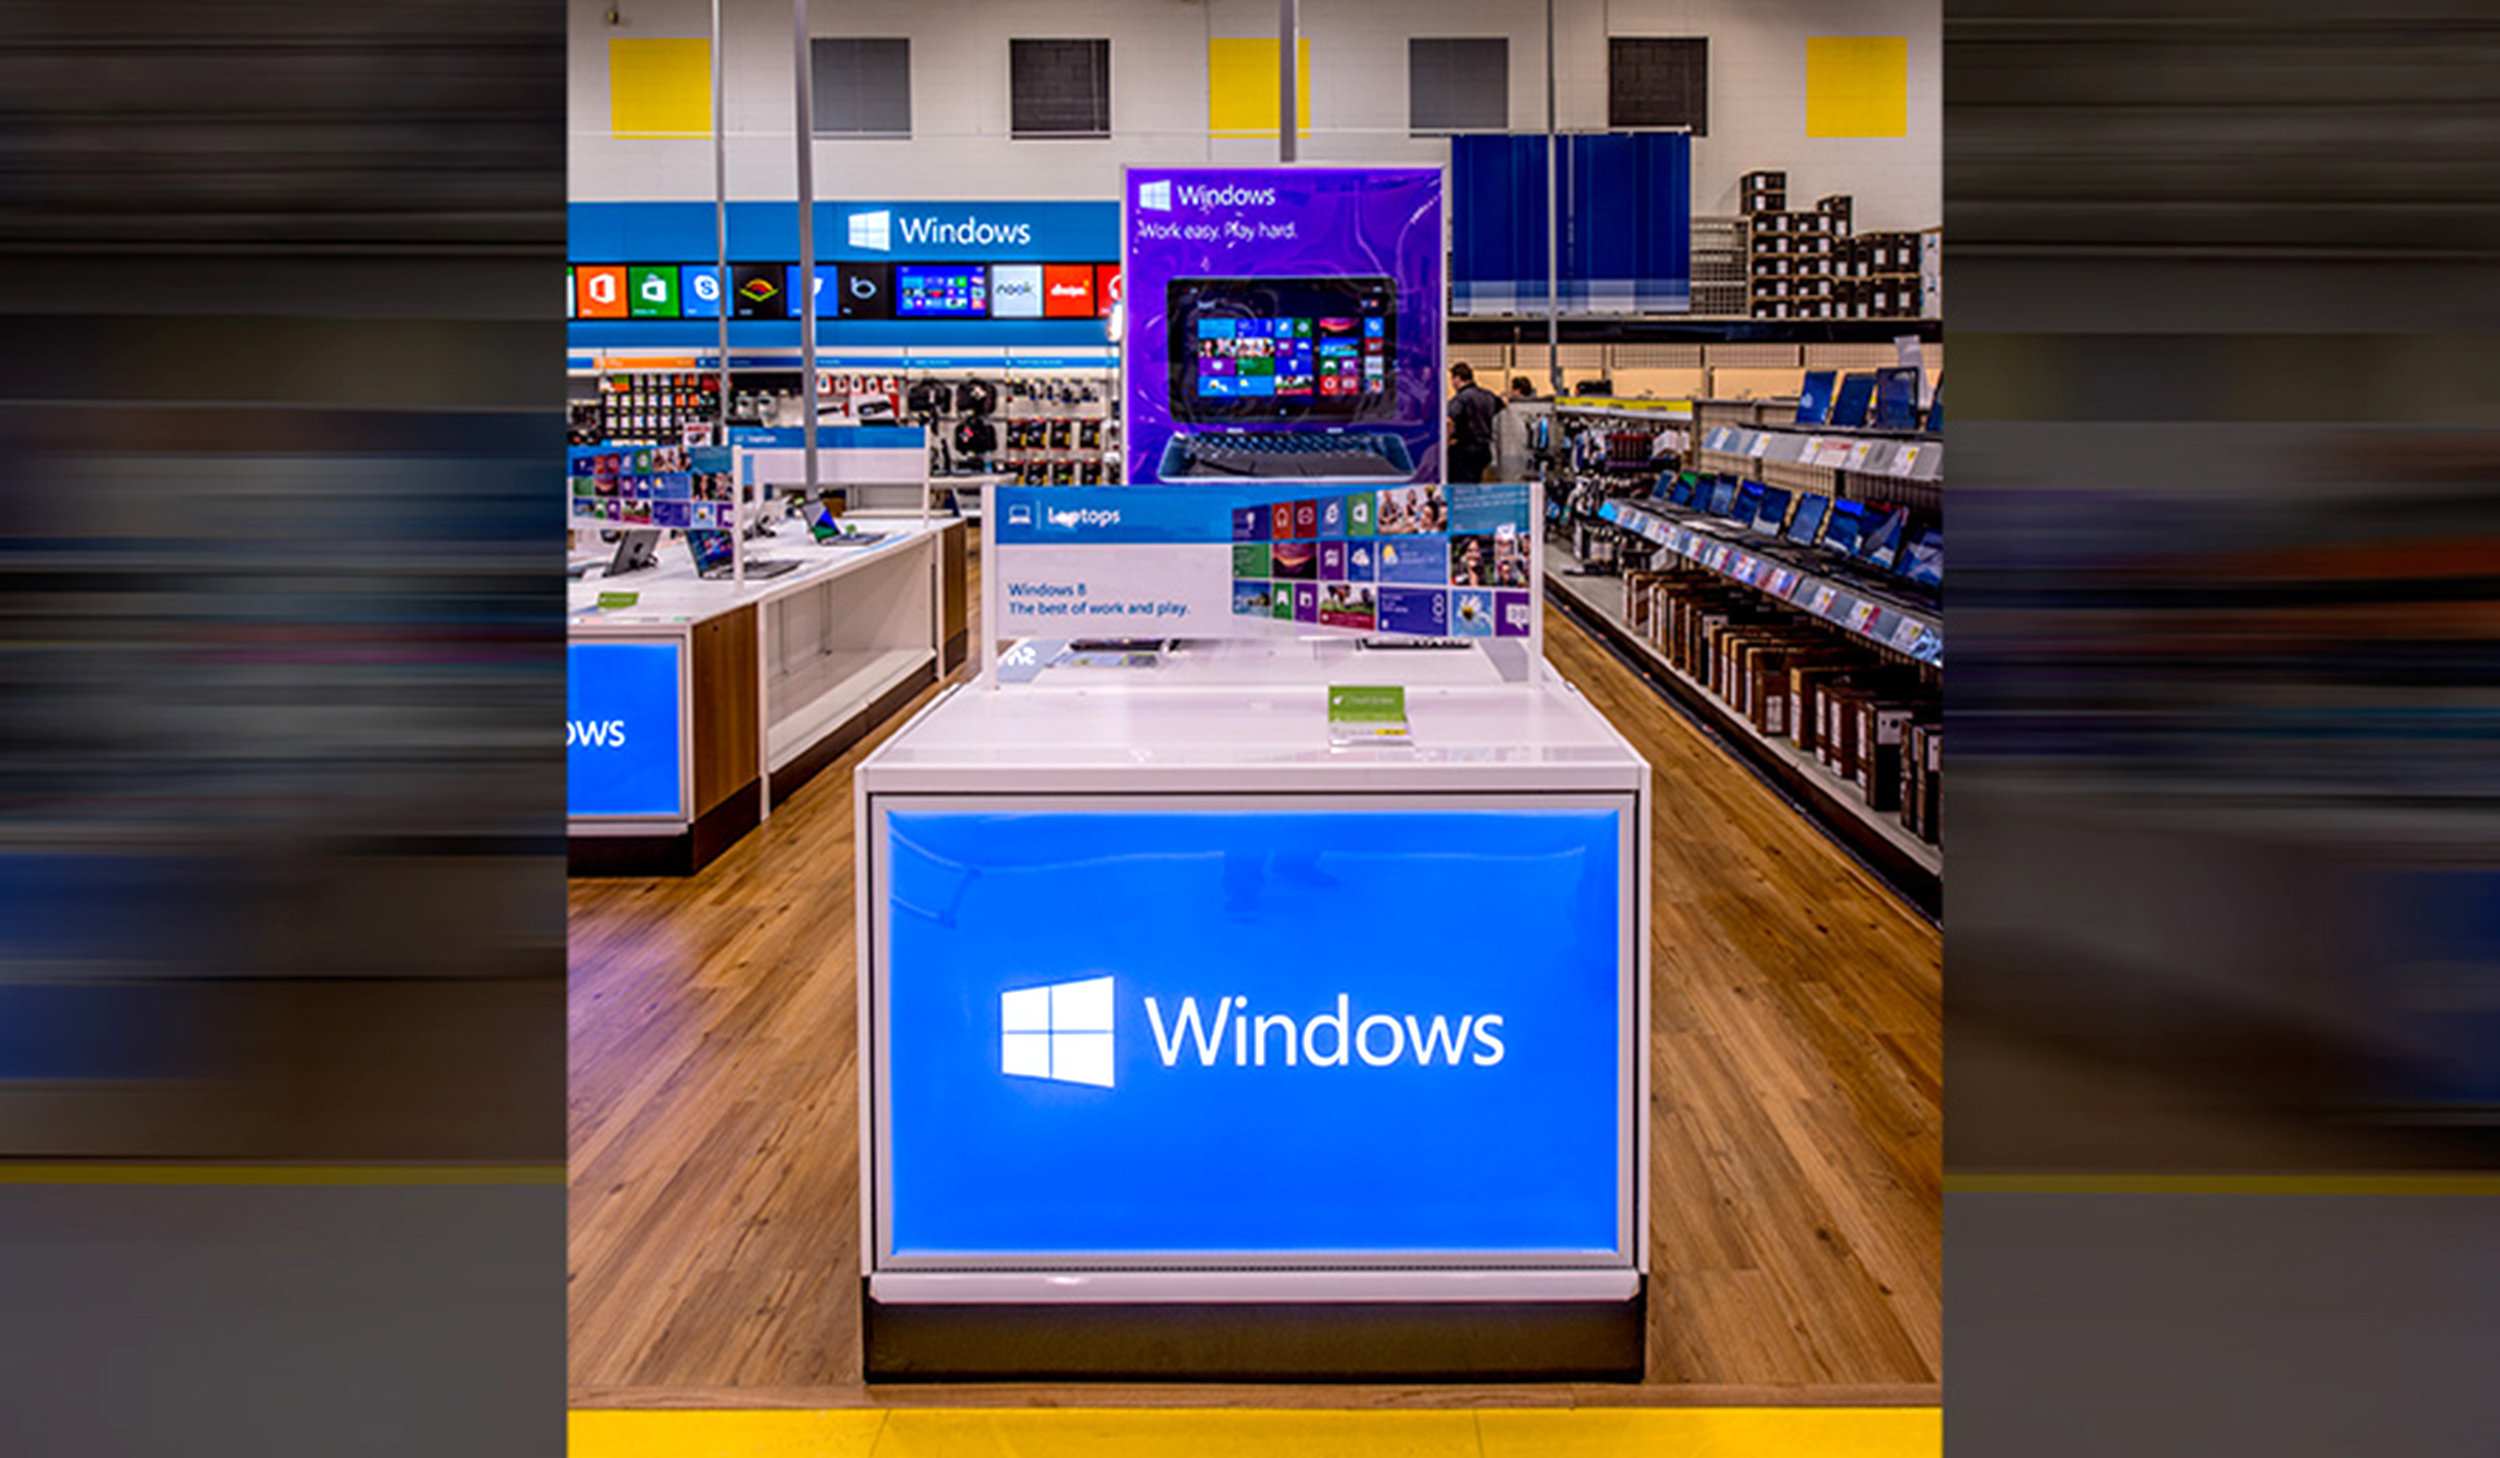 Windows Store at Best Buy - ImagiCorps designed, engineered, fabricated, printed, fulfilled and transported each full kit direct to store.